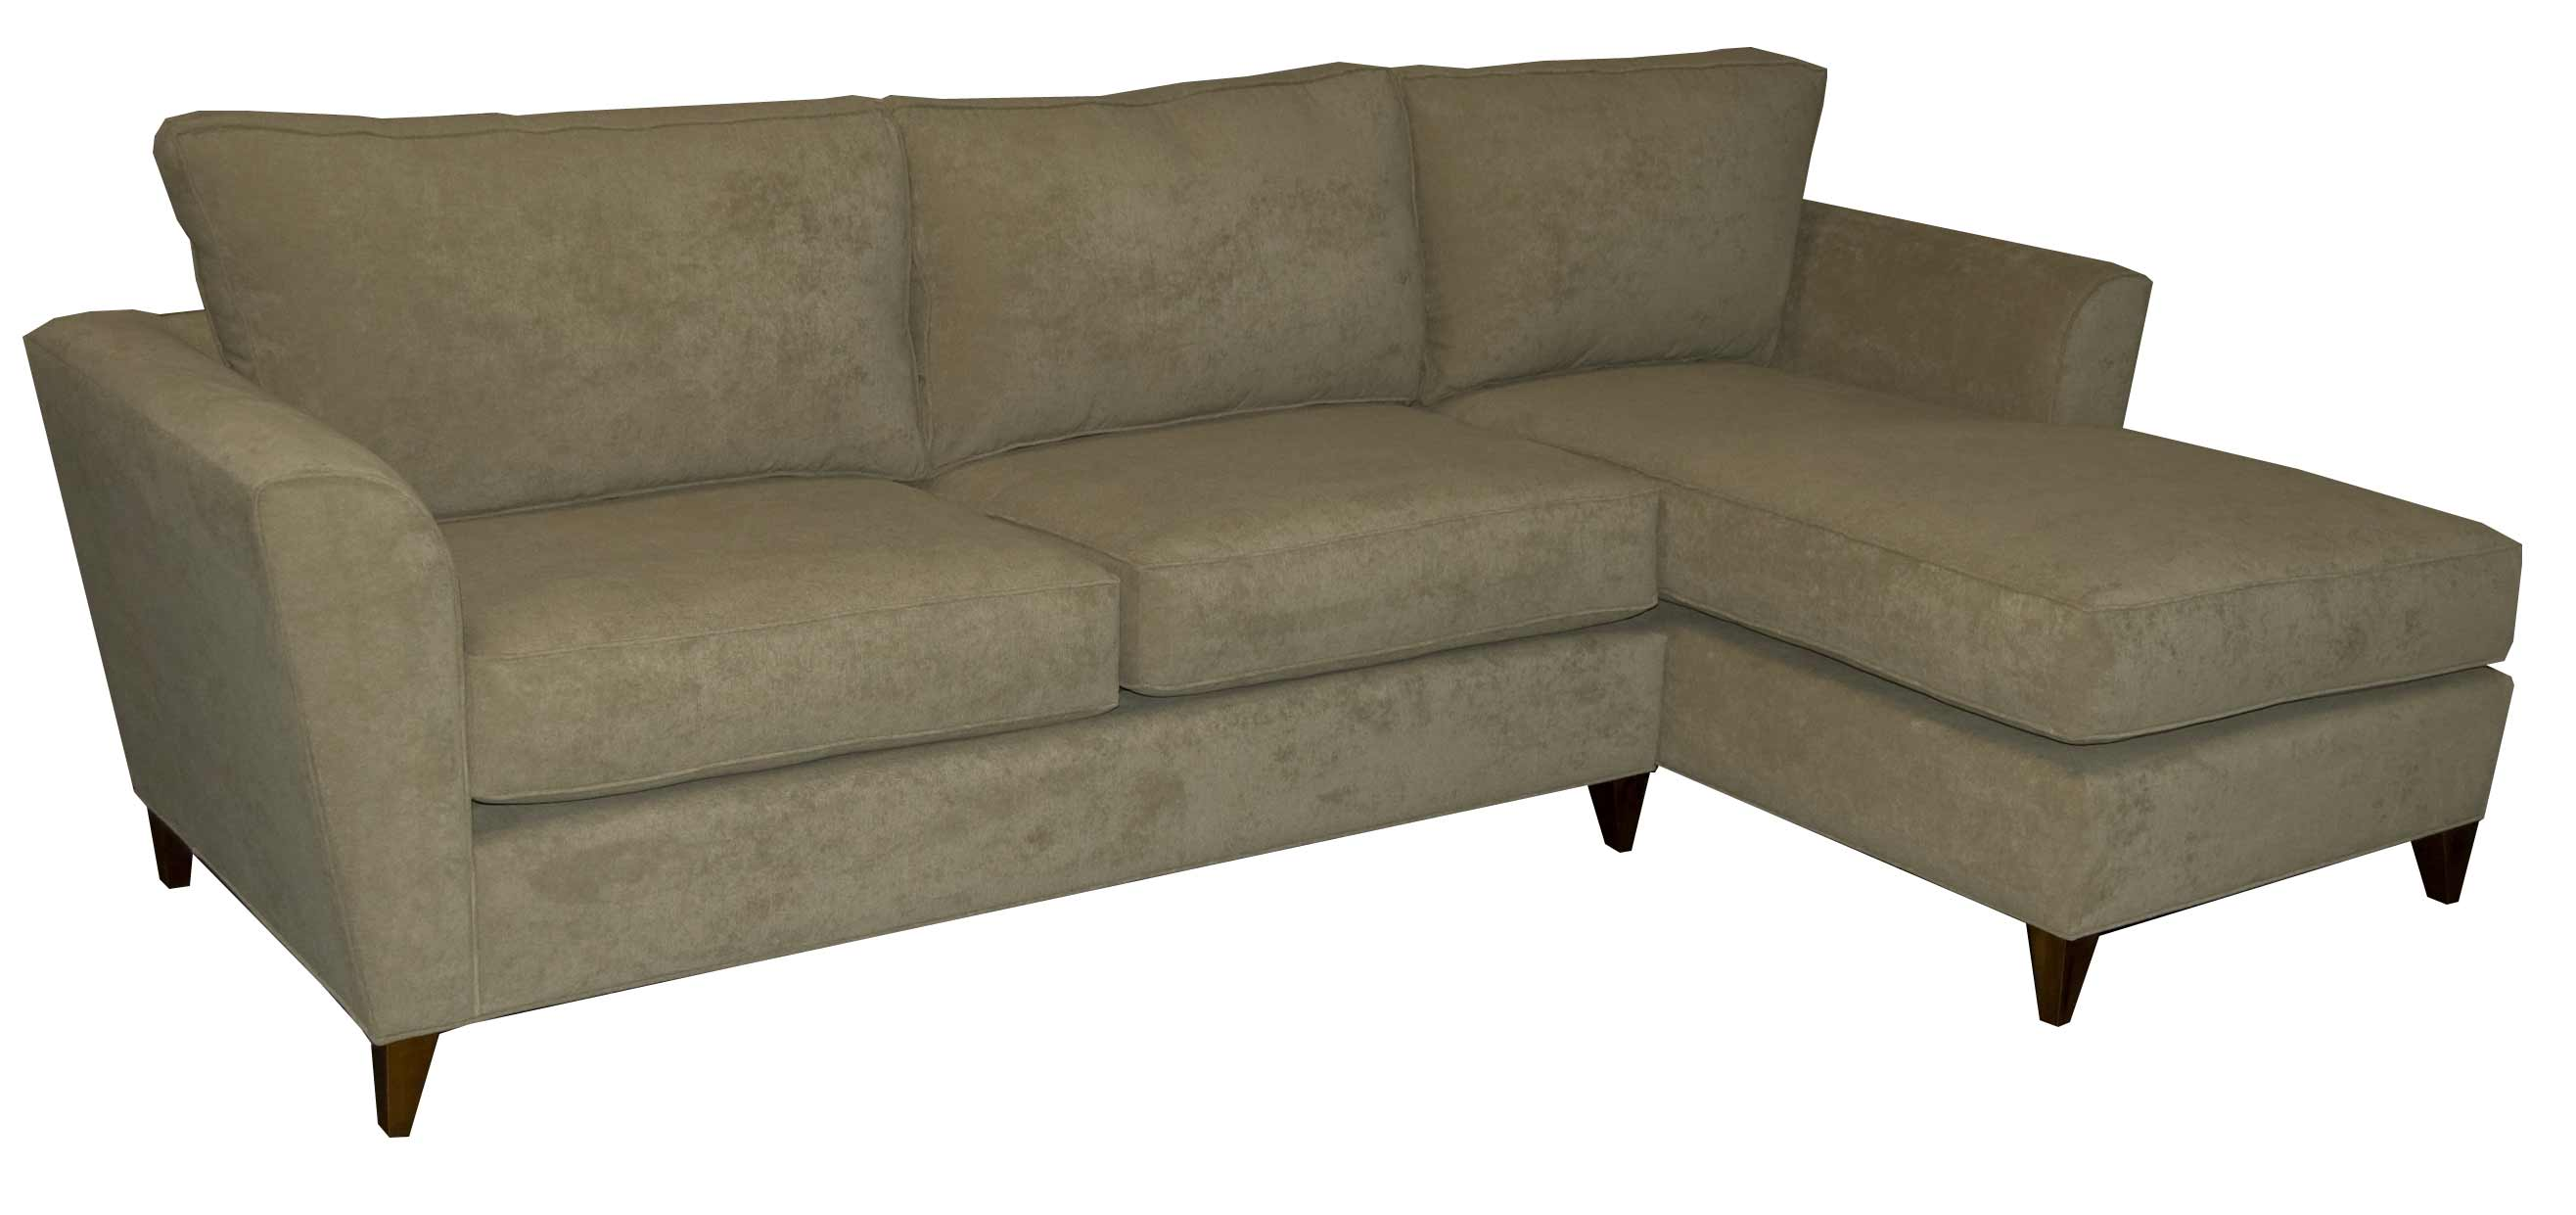 Affordable sectionals for enhancing decor for Cheap couches